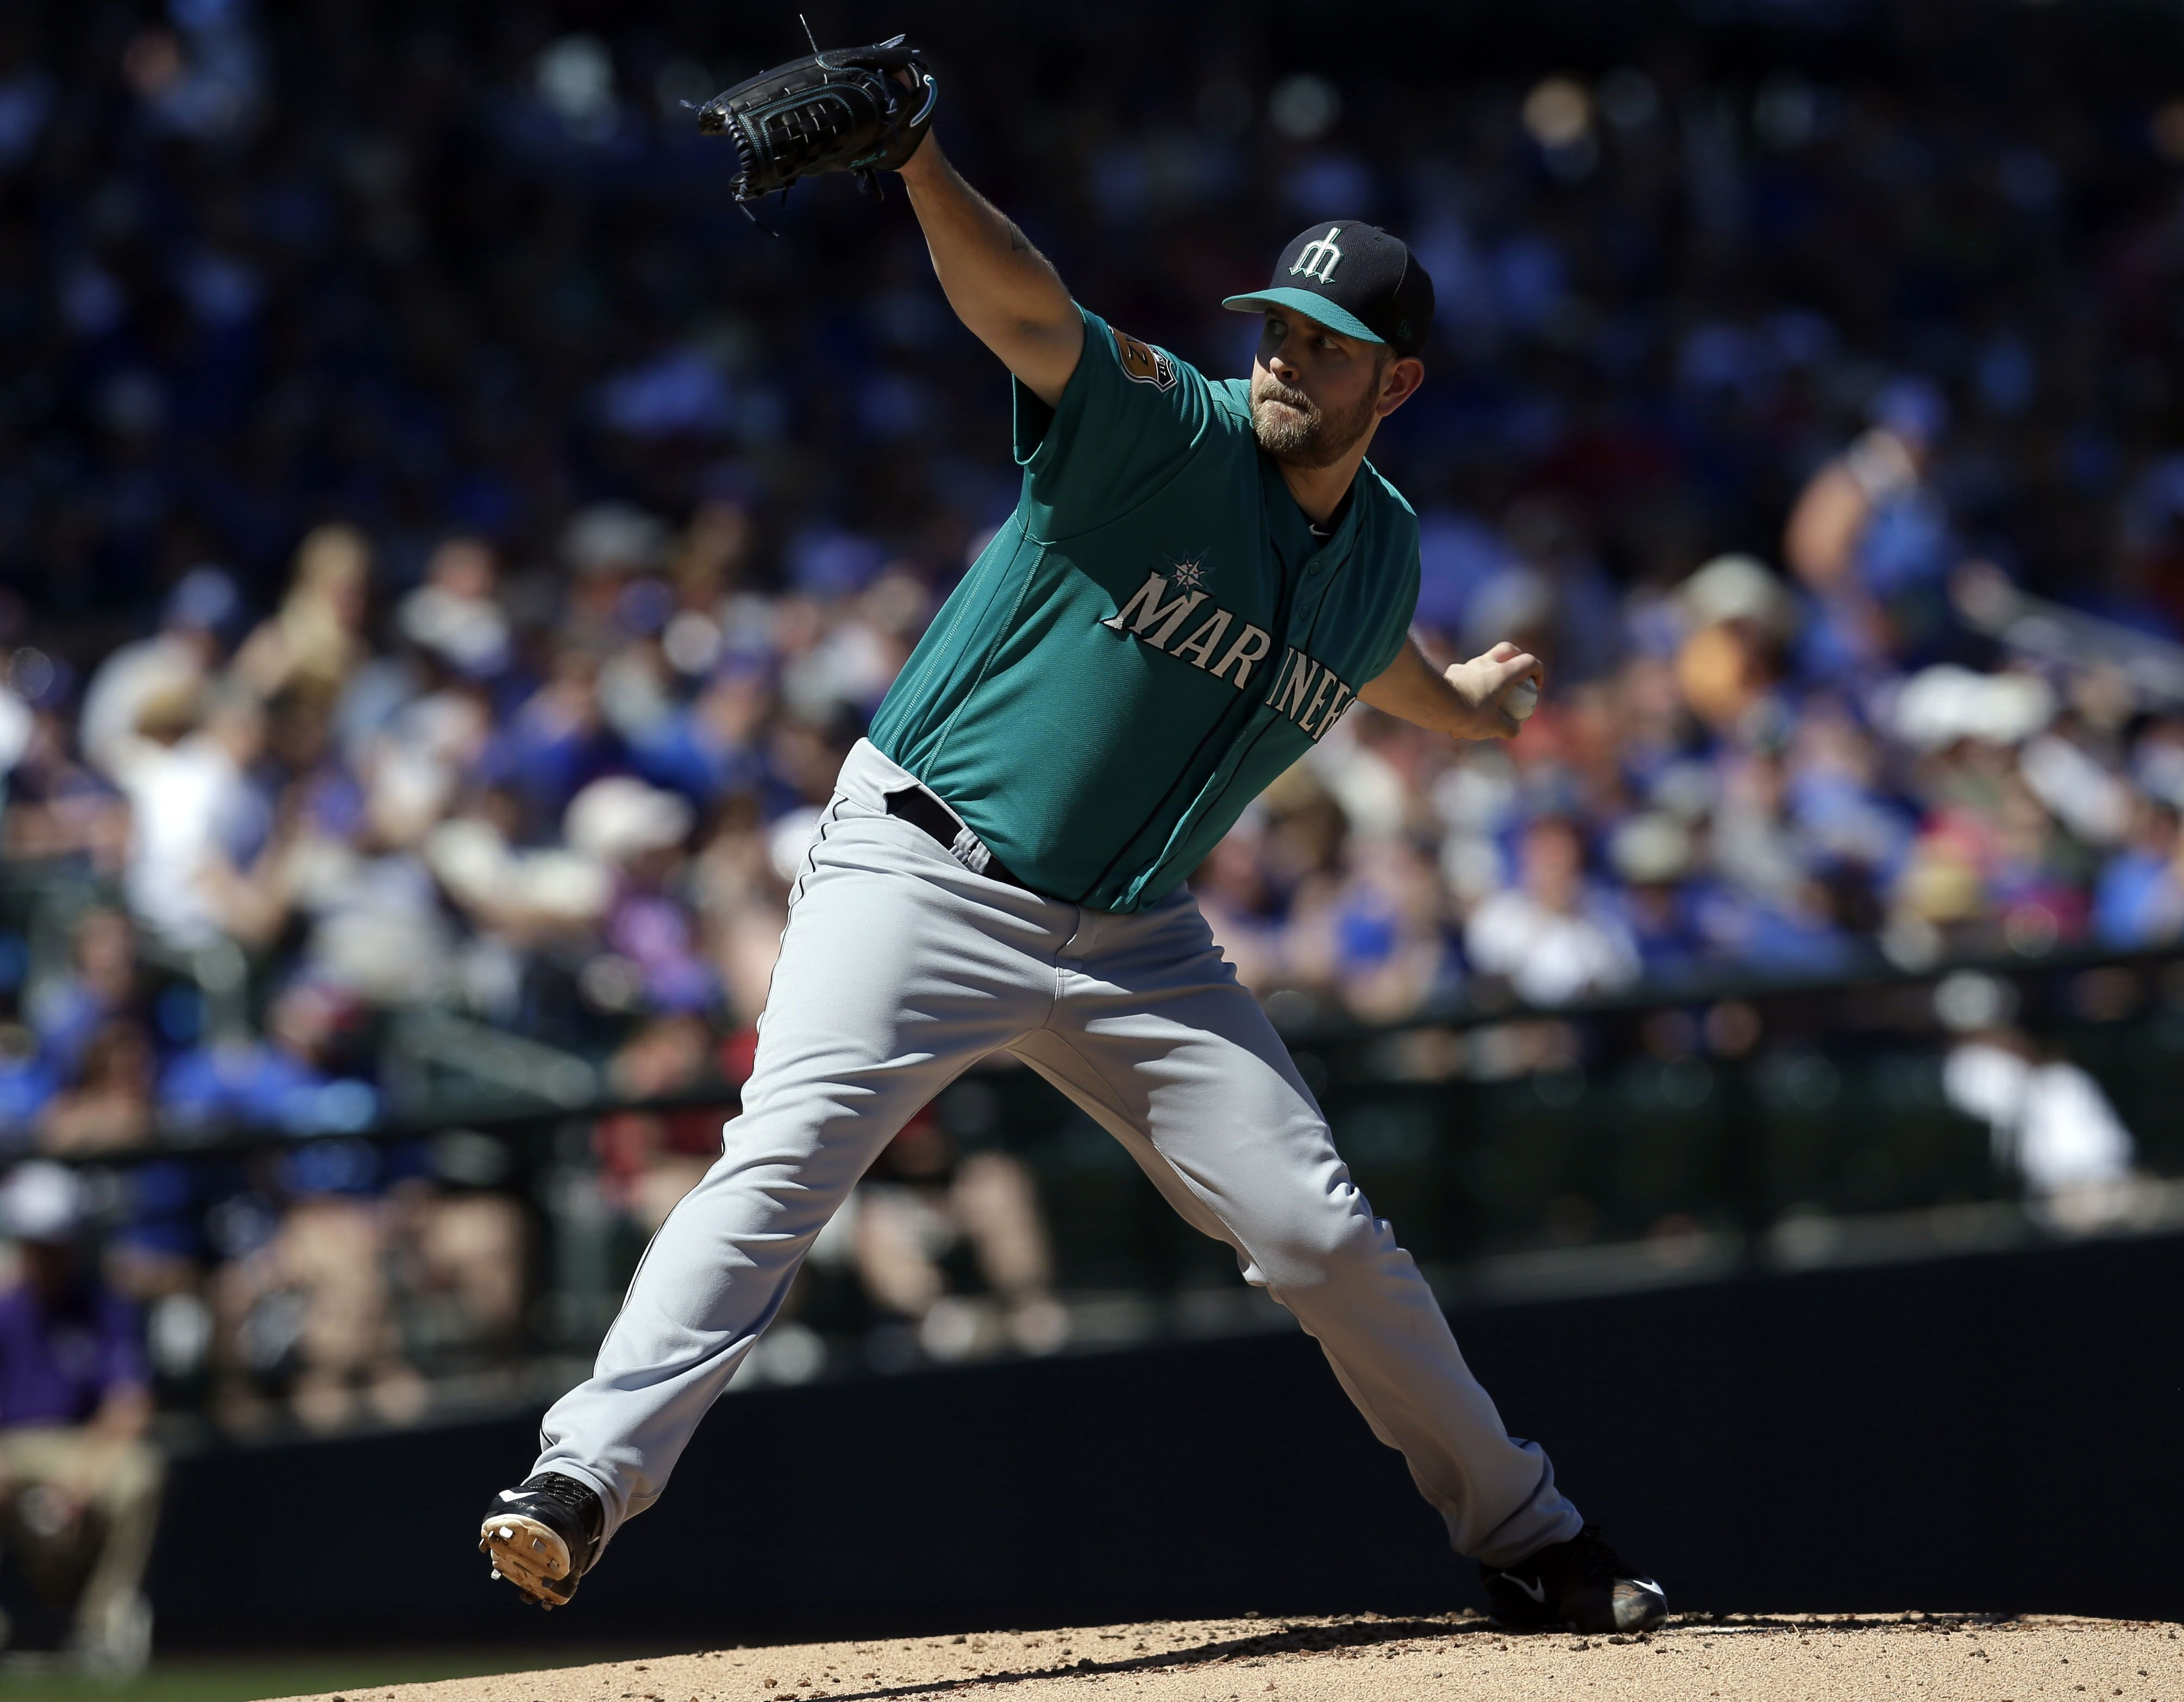 Mariners: Why They Will Make the Postseason - Page 3